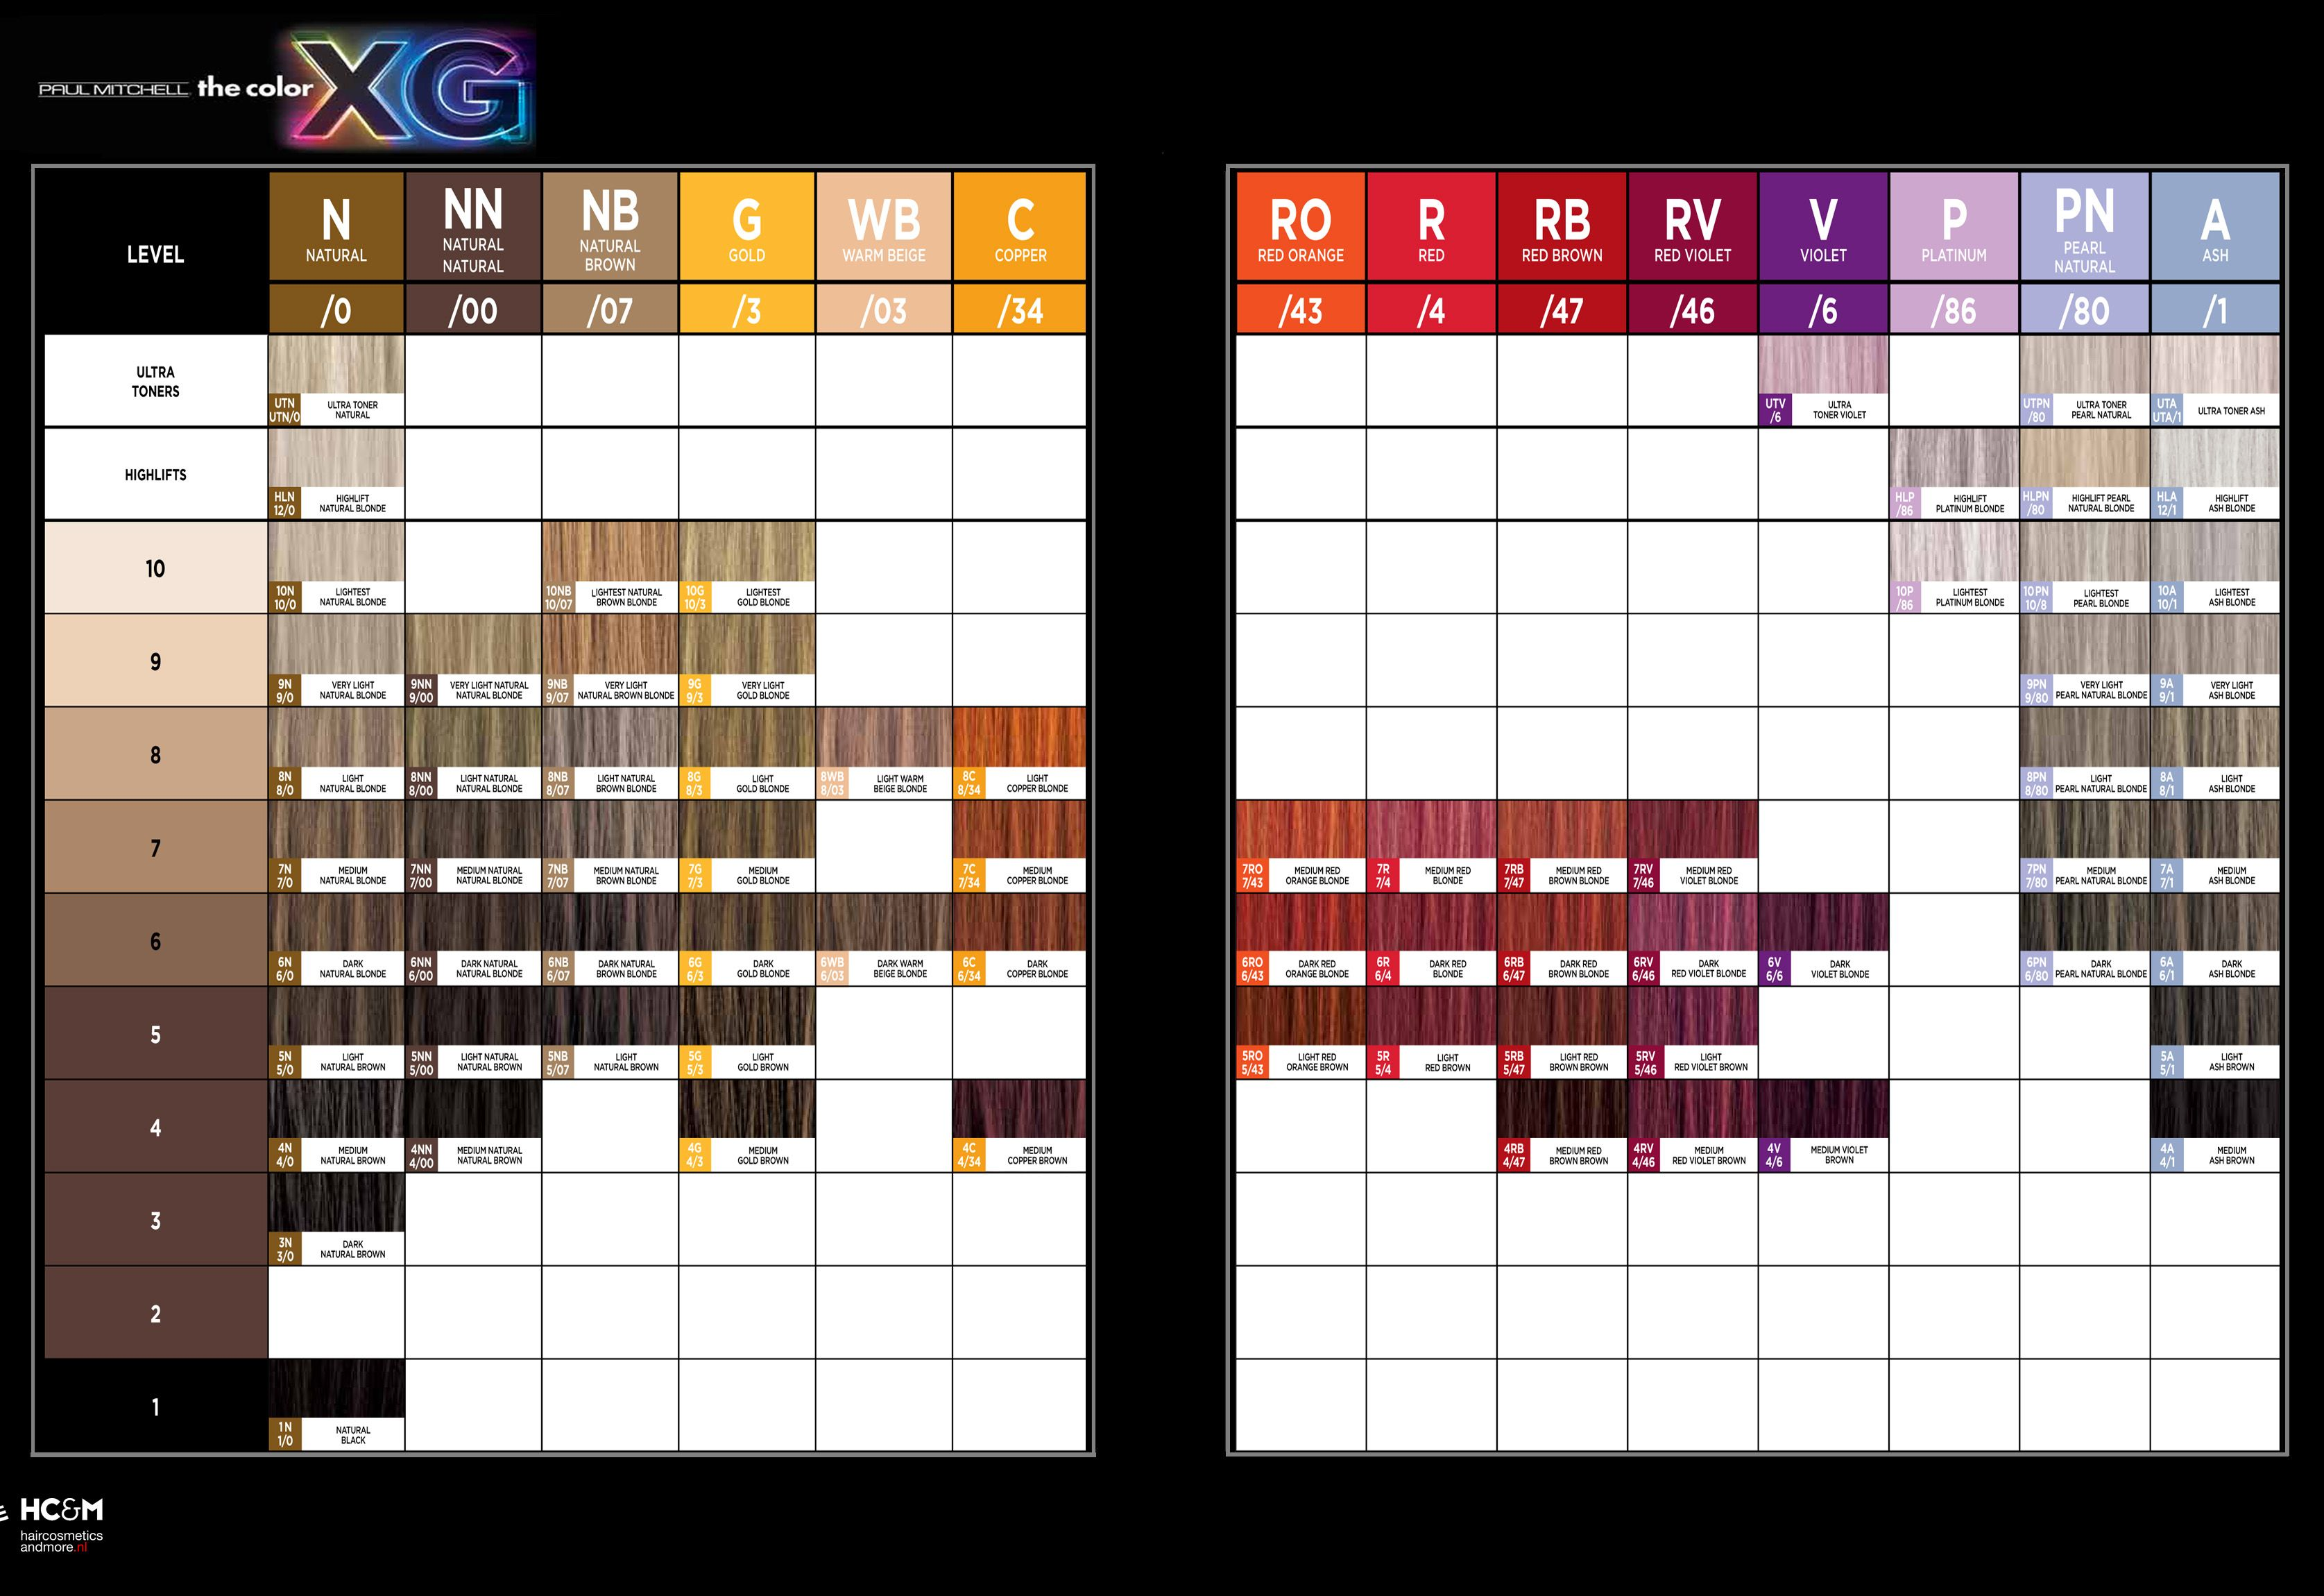 Paul mitchell the color xg color chart i luv m beauty parlour paul mitchell the color xg color chart nvjuhfo Image collections